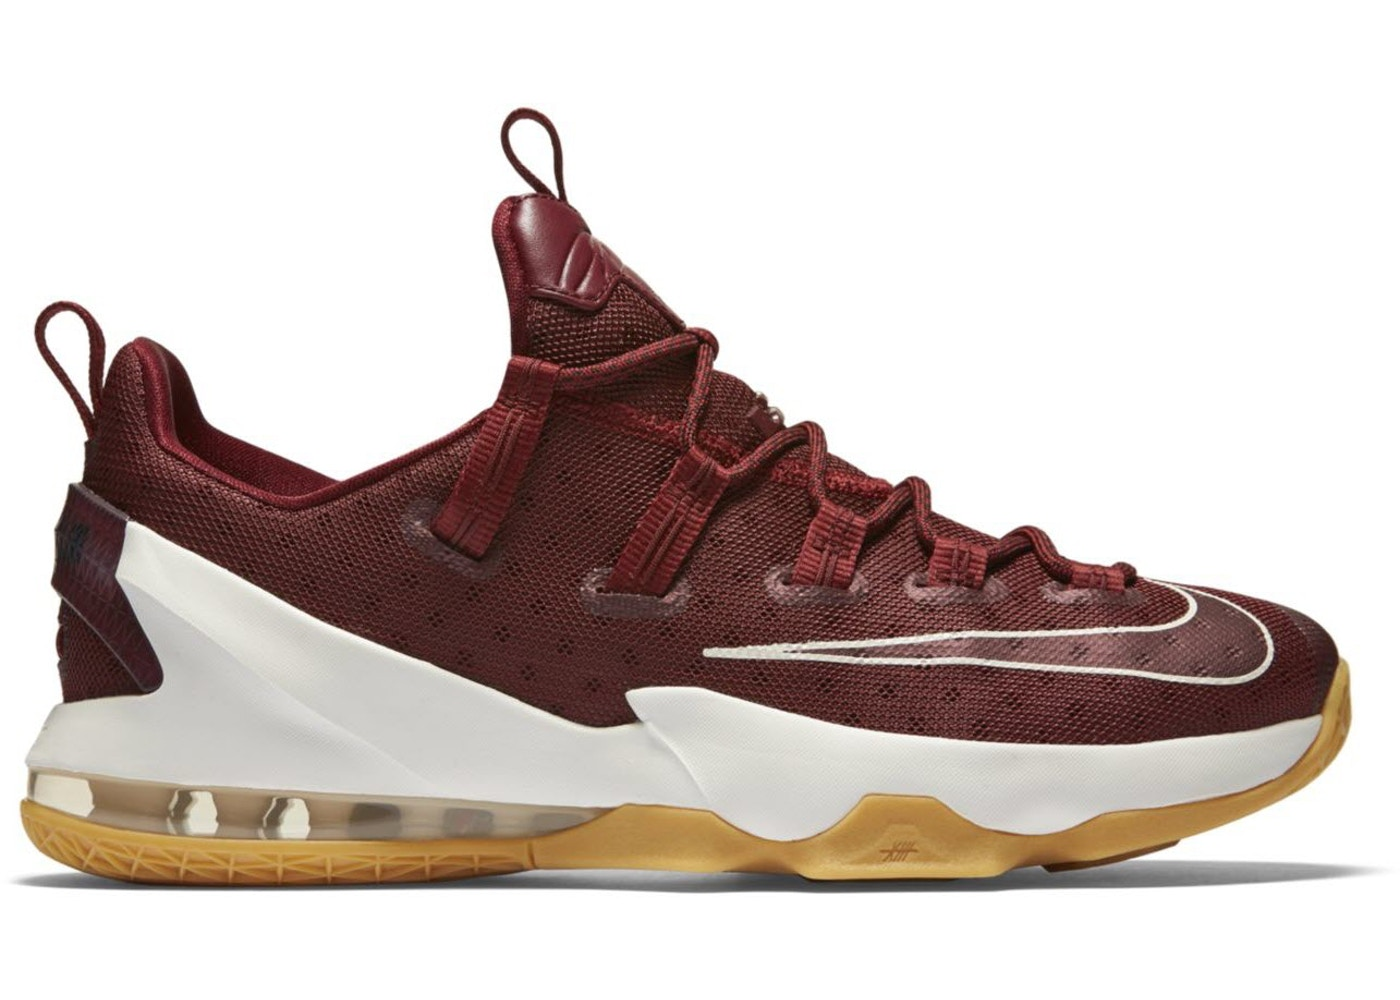 quality design d4b80 c3ee5 LeBron 13 Low Cavs